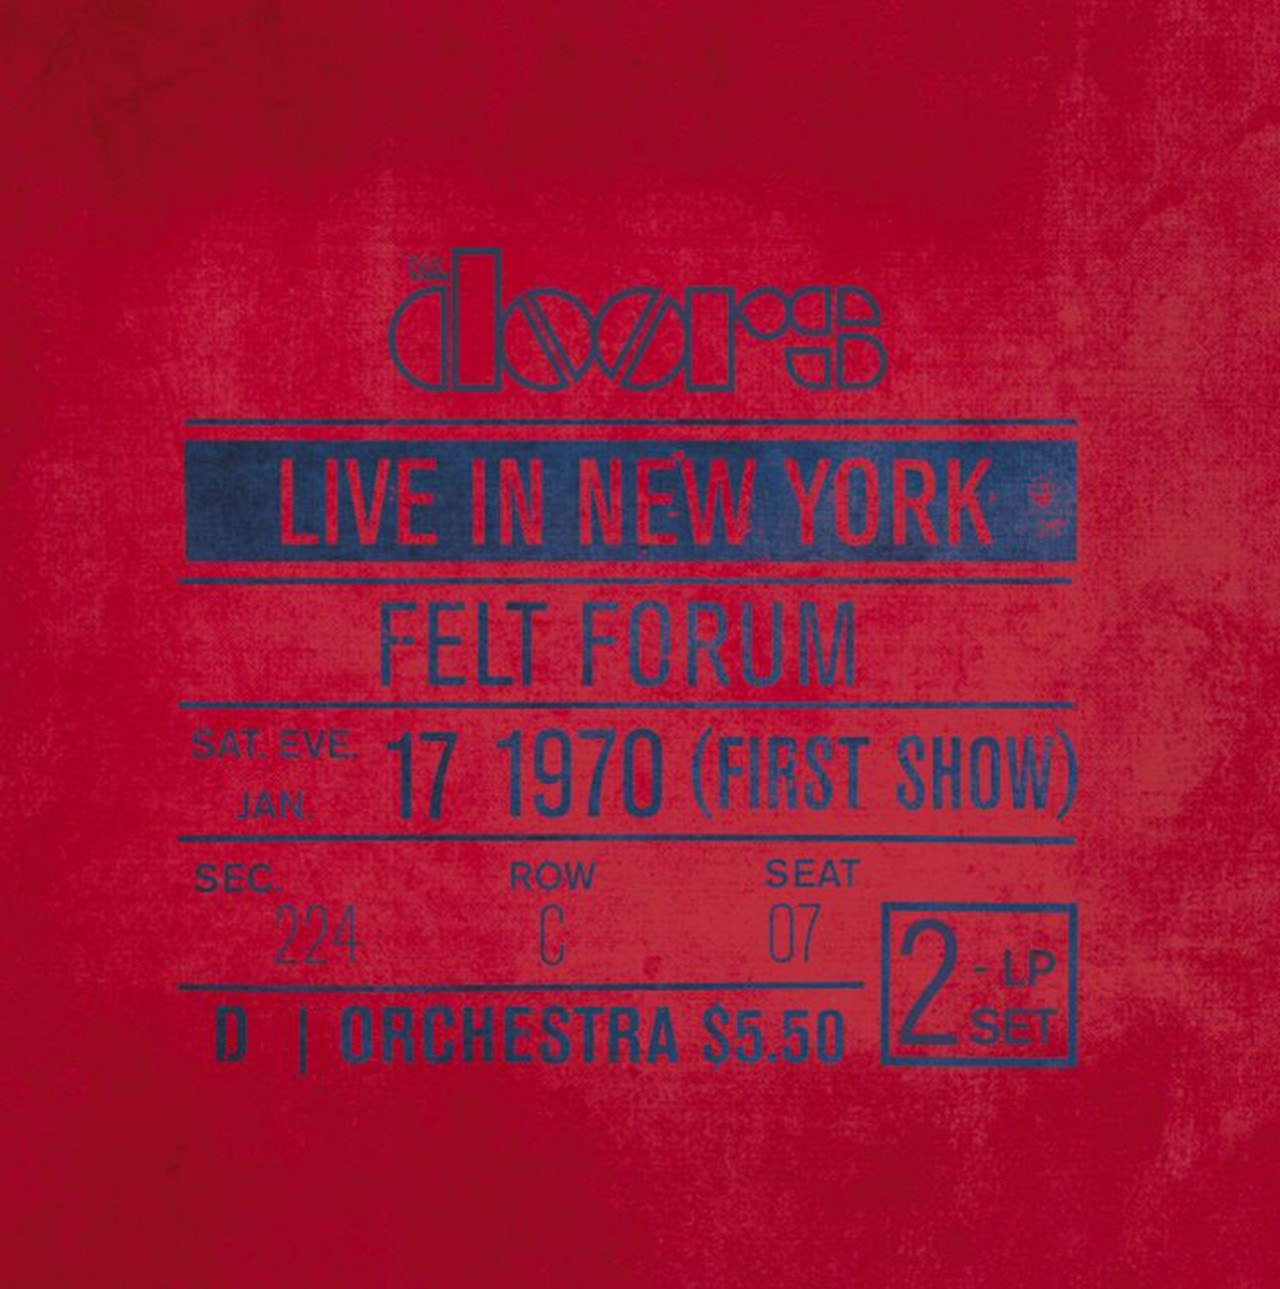 Live in New York - 1